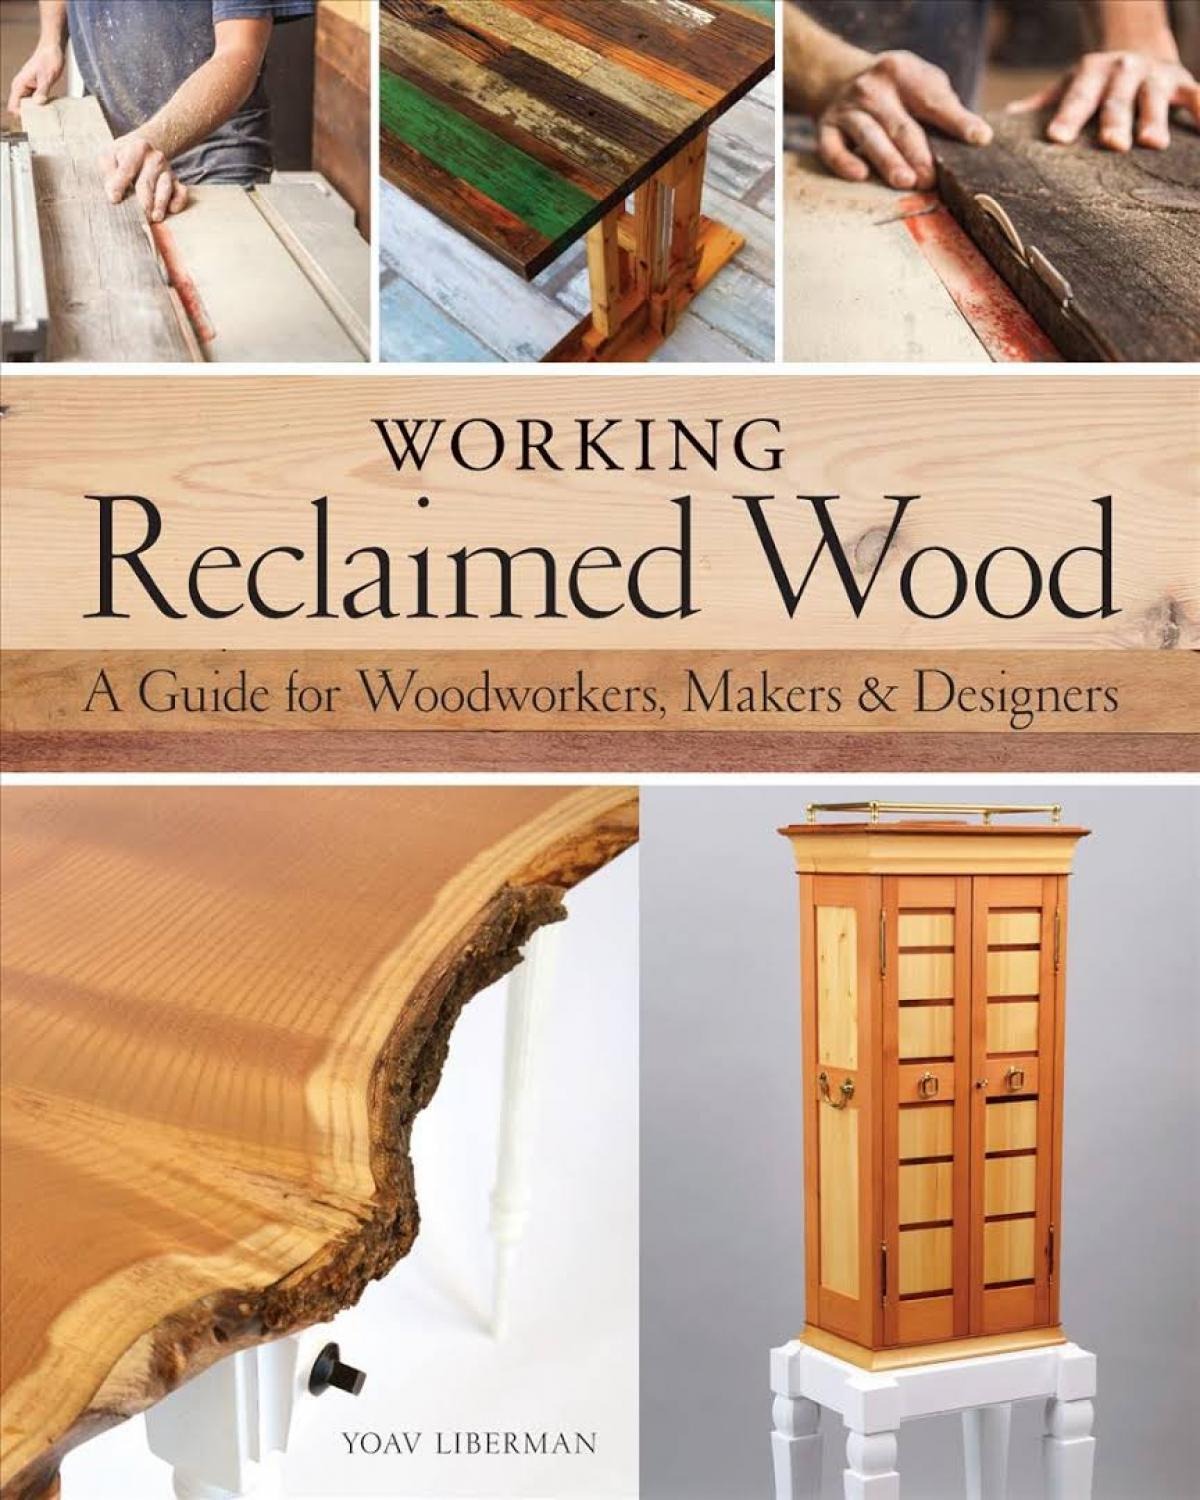 Book Publication Party - Working Reclaimed Wood by Yoav Liberman 1